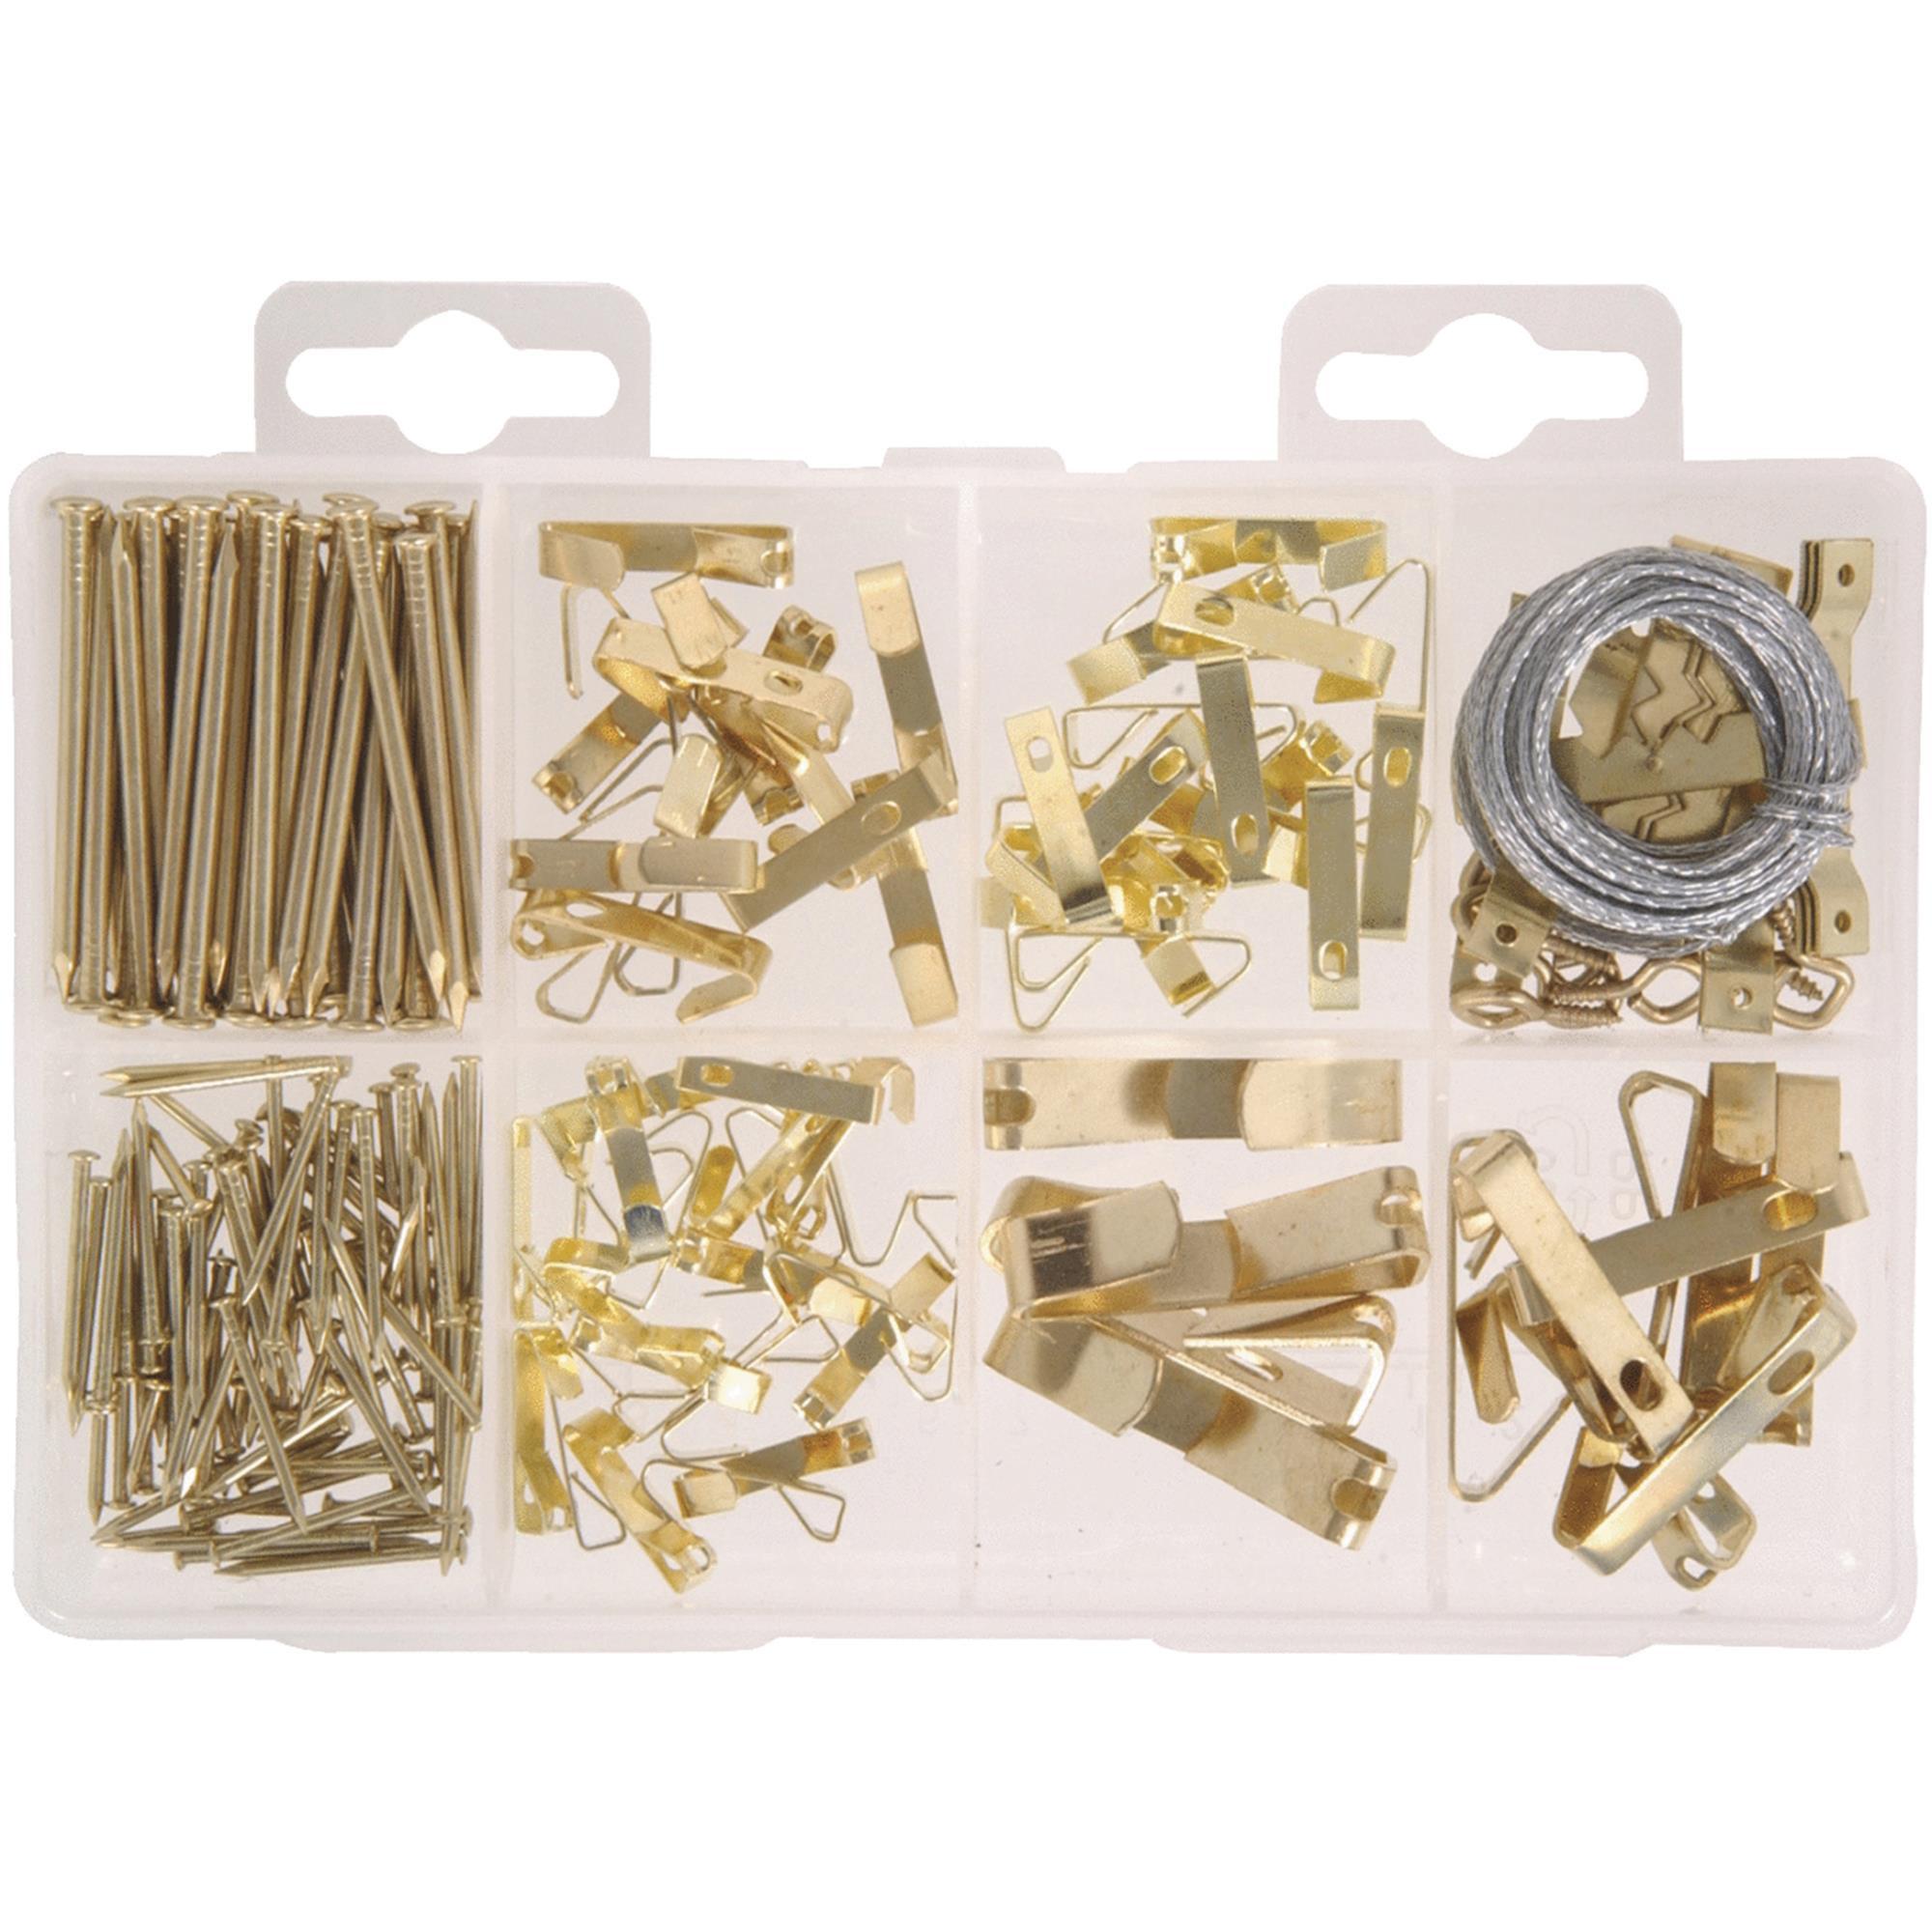 Picture Hanger Assortment Kit